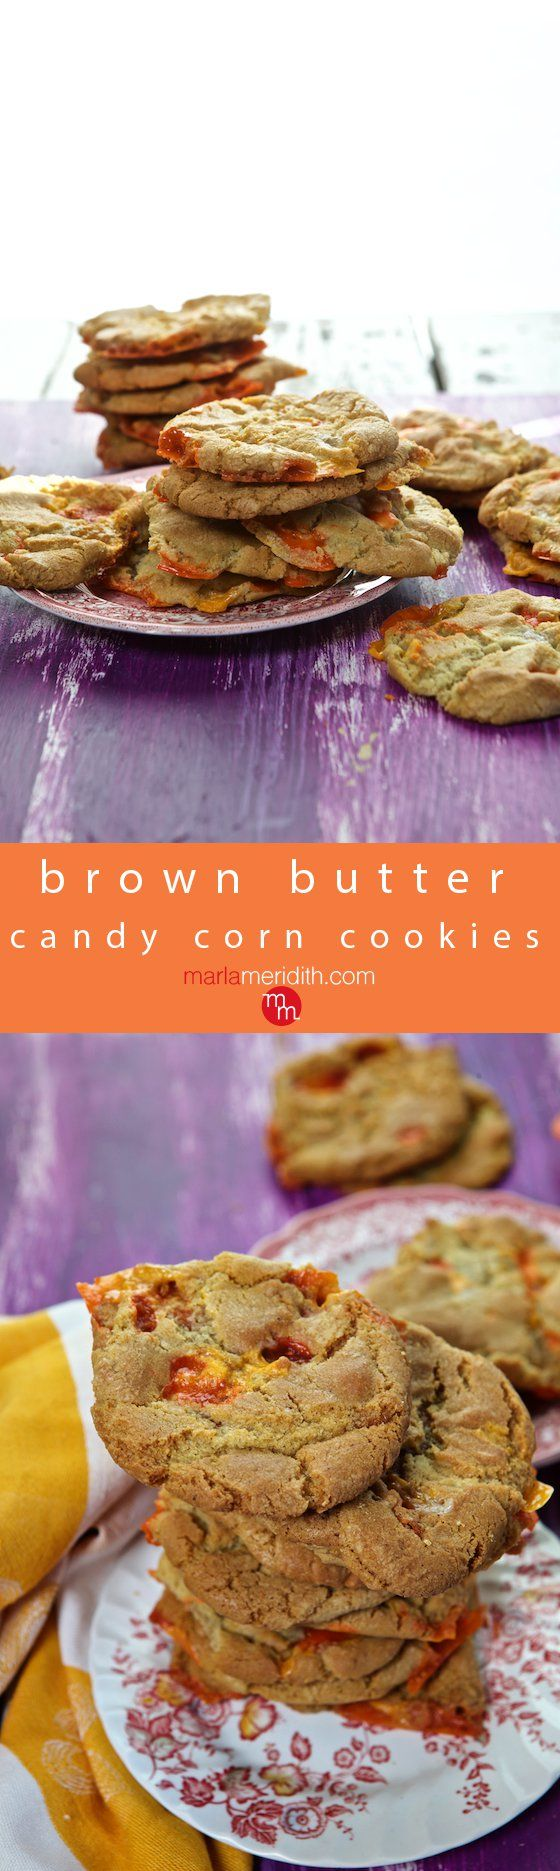 Brown Butter Candy Corn Cookies Recipe, these cookies are your go-to treat for #Halloween & fall themed celebrations! MarlaMeridith.com ( @marlameridith )